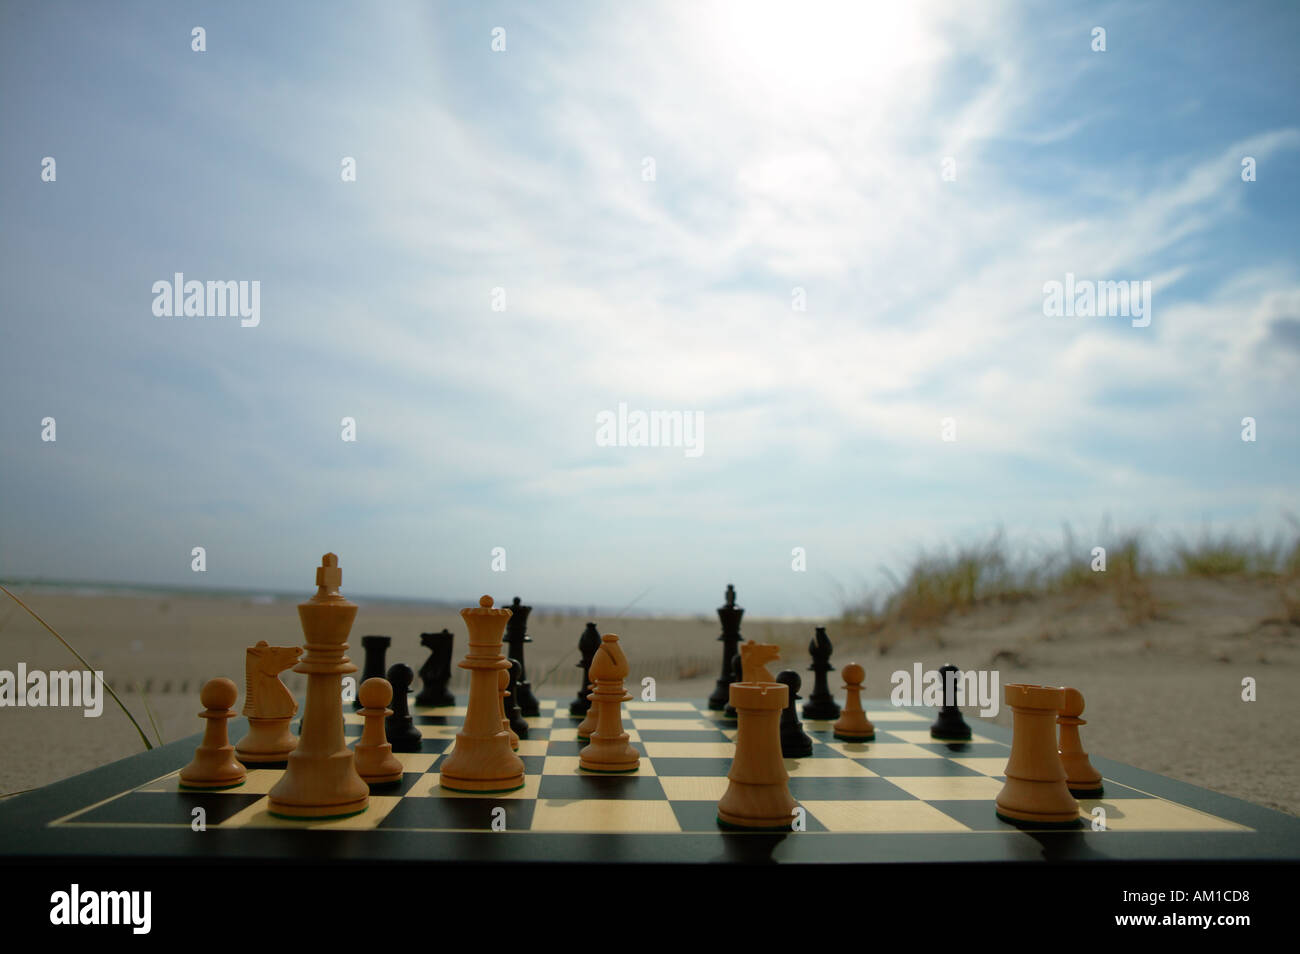 War. Concept image. Chess game - Stock Image